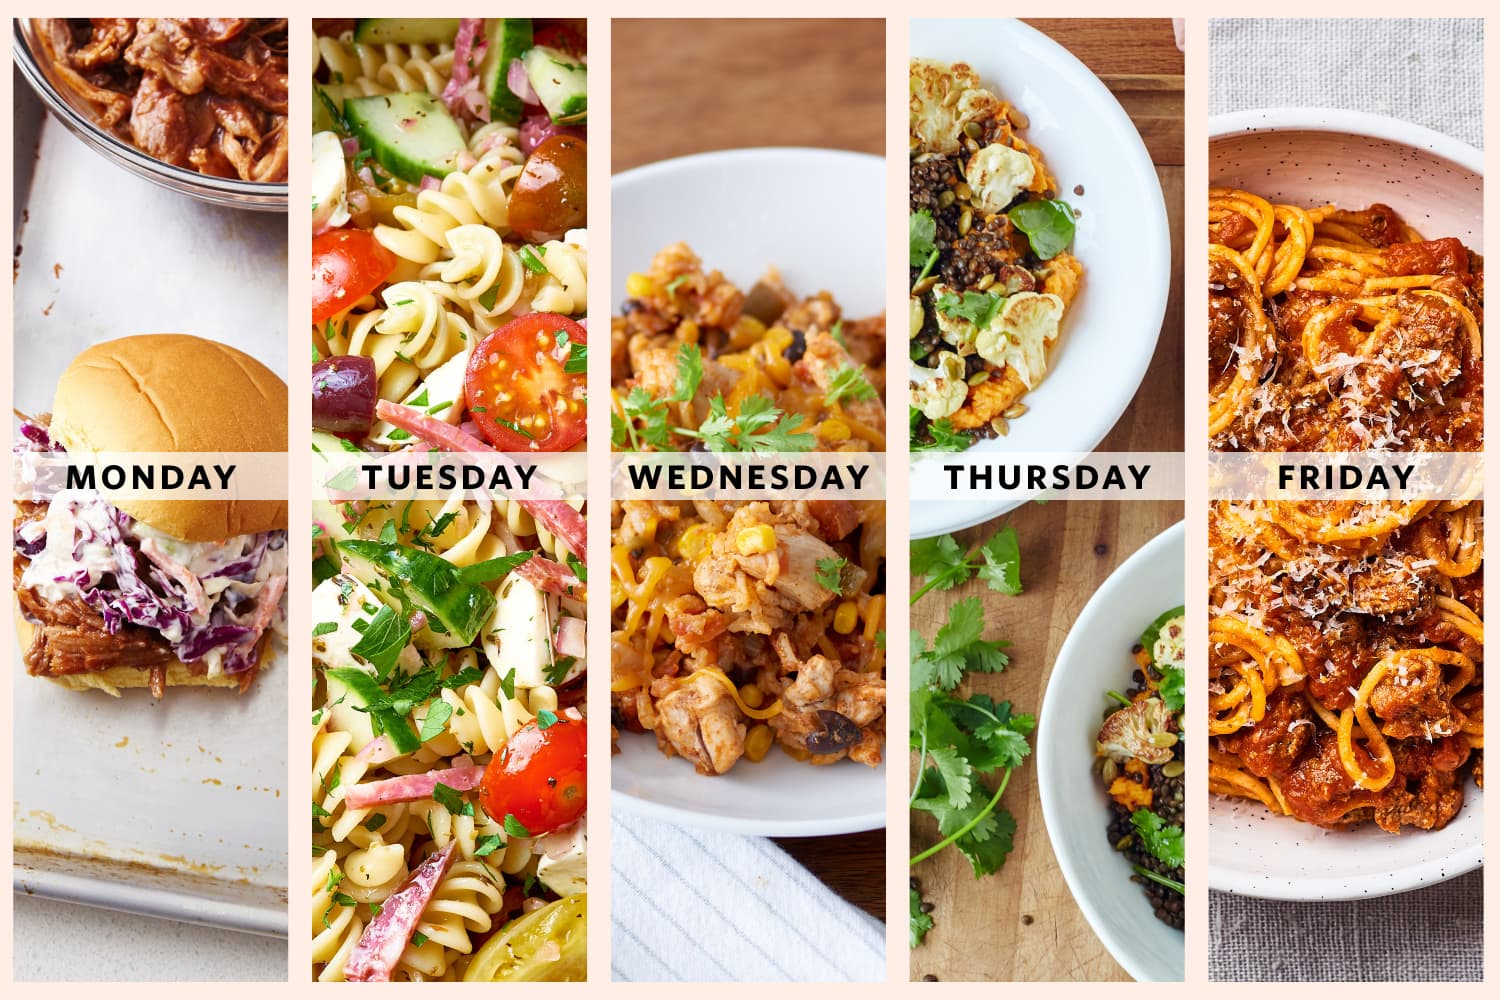 Next Week's Meal Plan: 5 Dinners You Can Make *Entirely* Ahead of Time